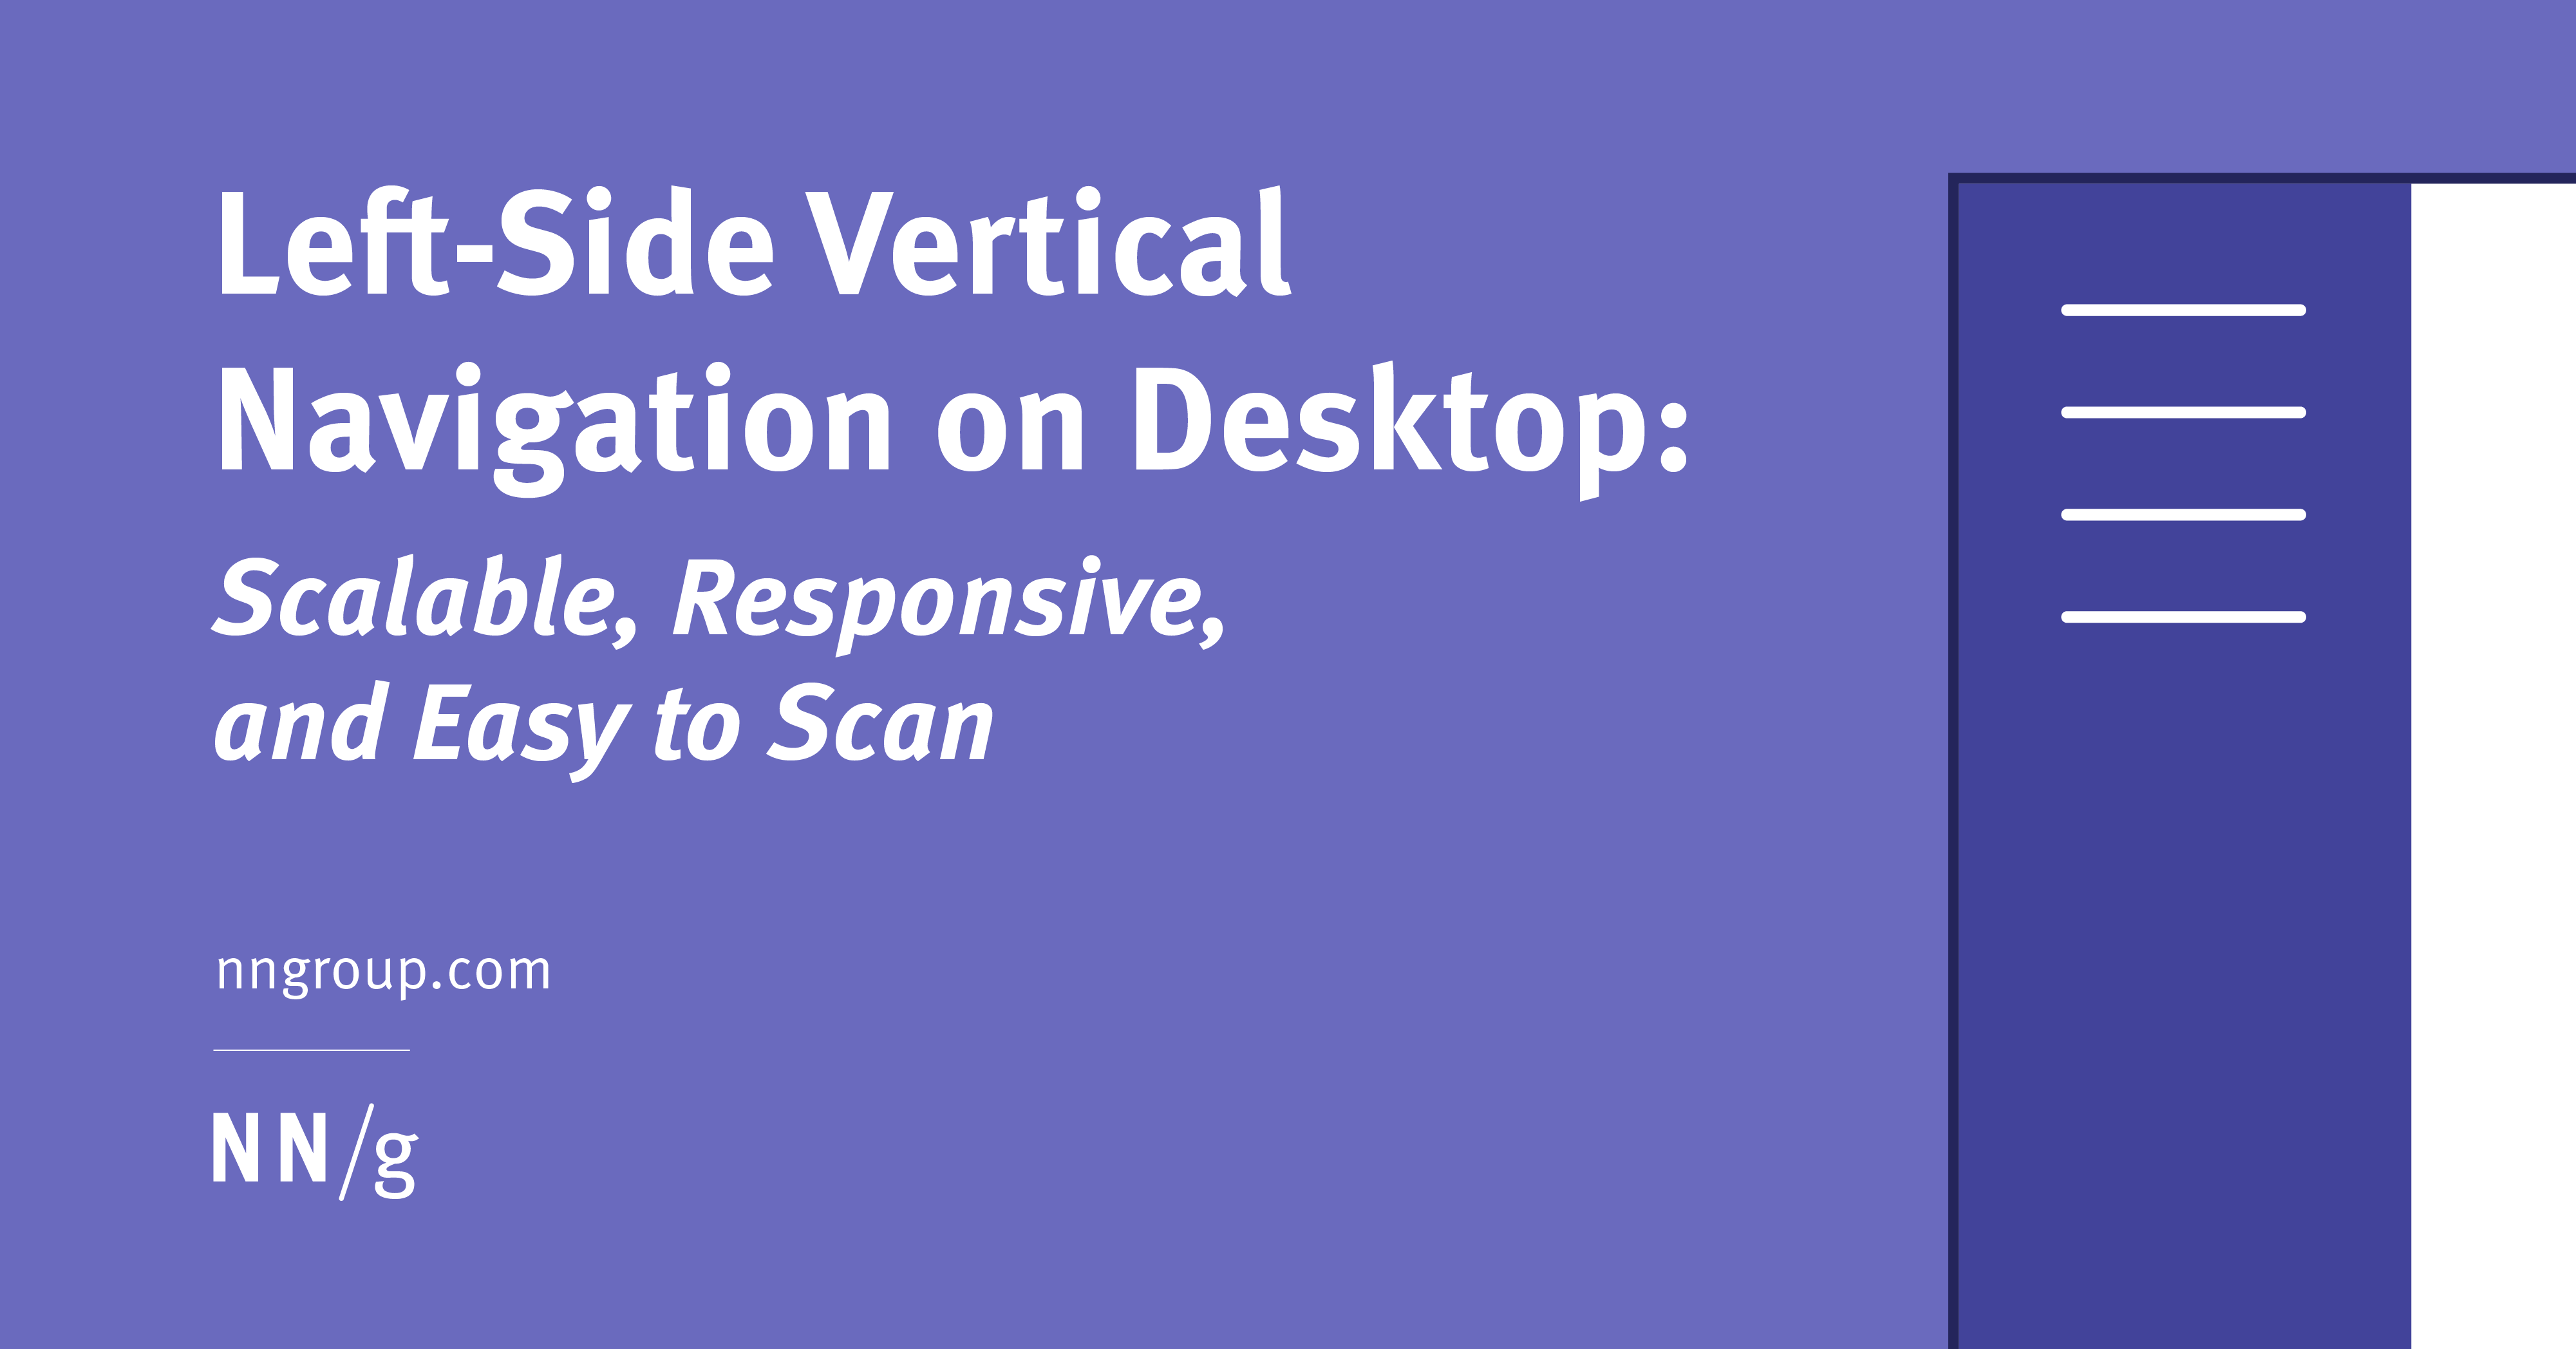 Left-Side Vertical Navigation on Desktop: Scalable, Responsive, and Easy to Scan